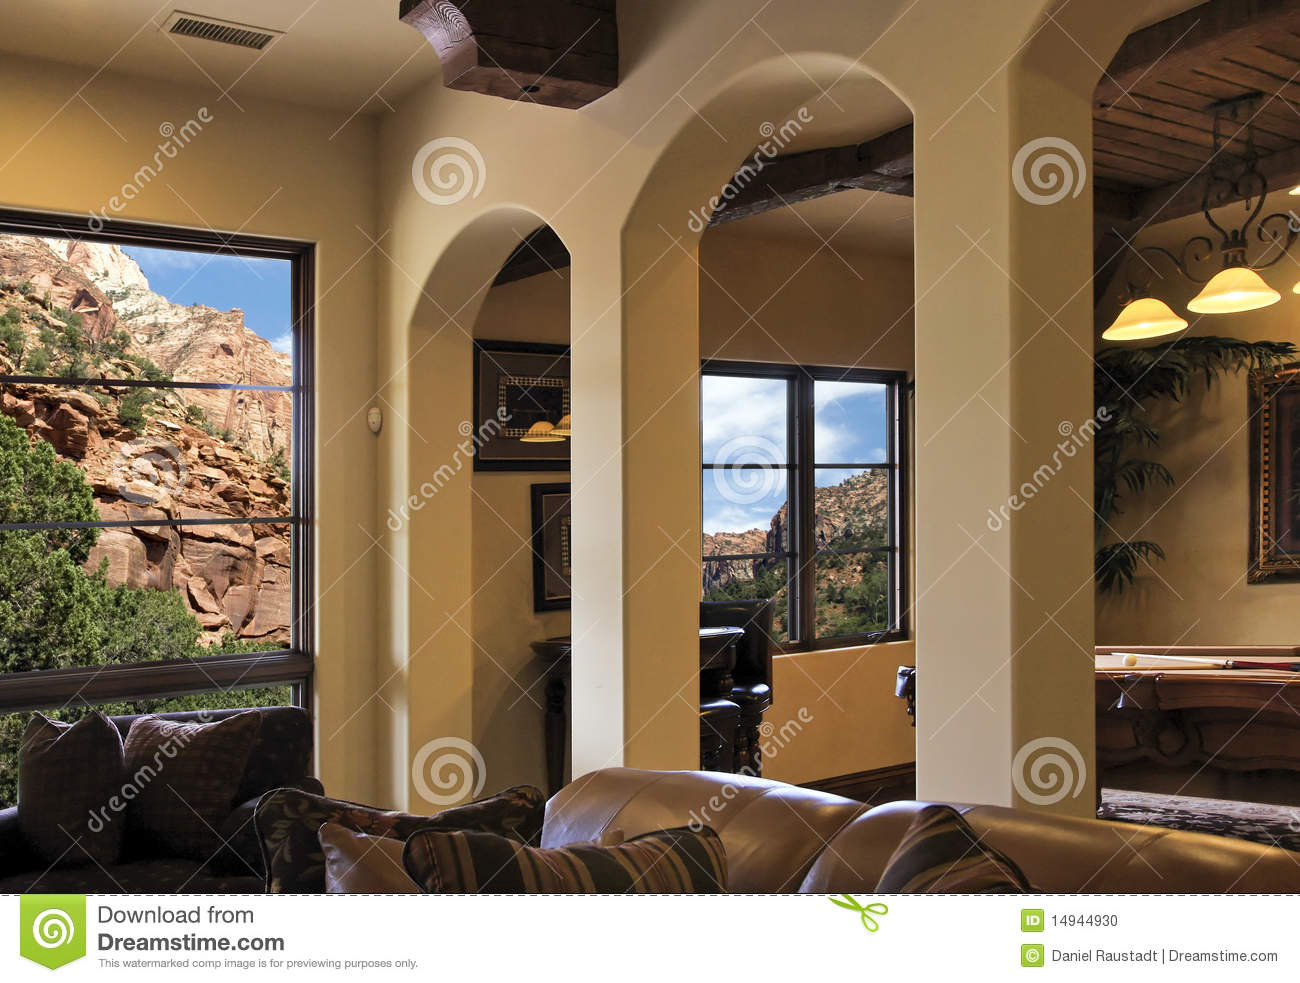 Italian Villa Interior furthermore Country Living in addition Oxford University Museum Of Natural History also 3 1982 84 Chrysler Lebaron Town Country Convertible Mark Cross Interior together with 97179304434526583. on country home interiors